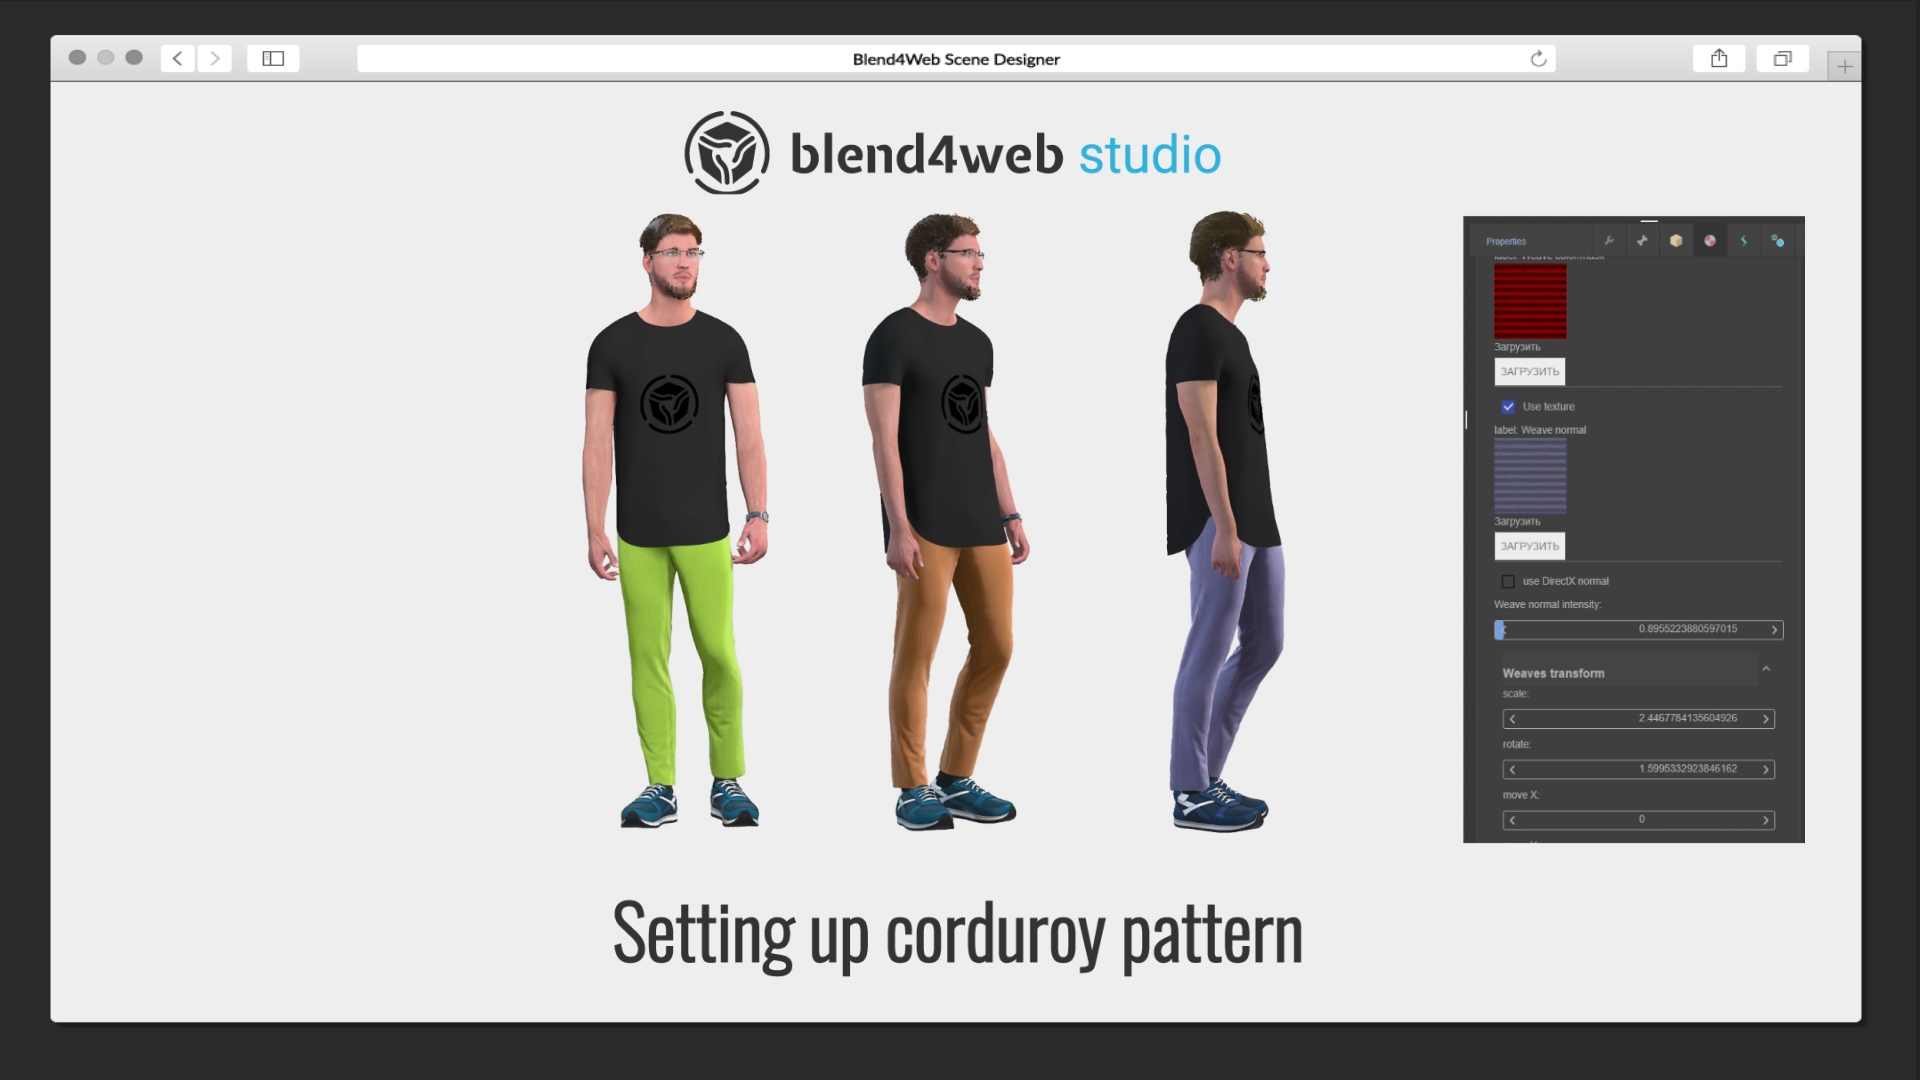 Blend4Web Studio: setting up corduroy pattern